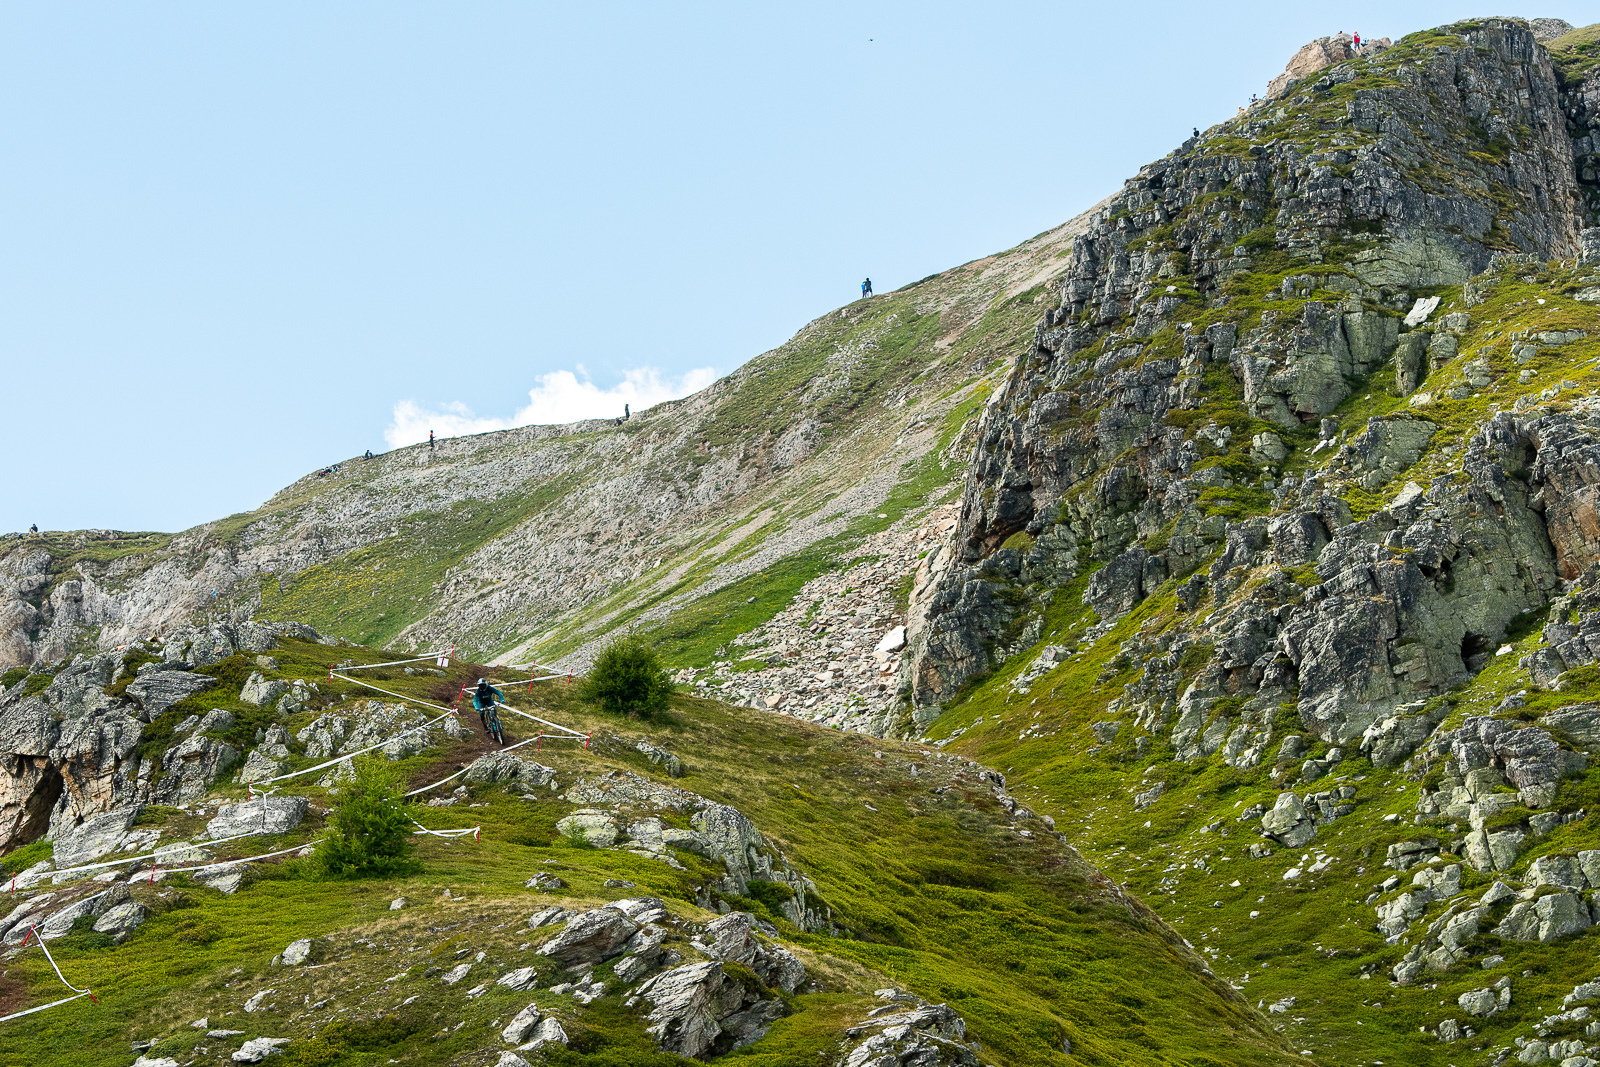 Each stage began in the low angle high alpine before diving into steep forest to the valley floor